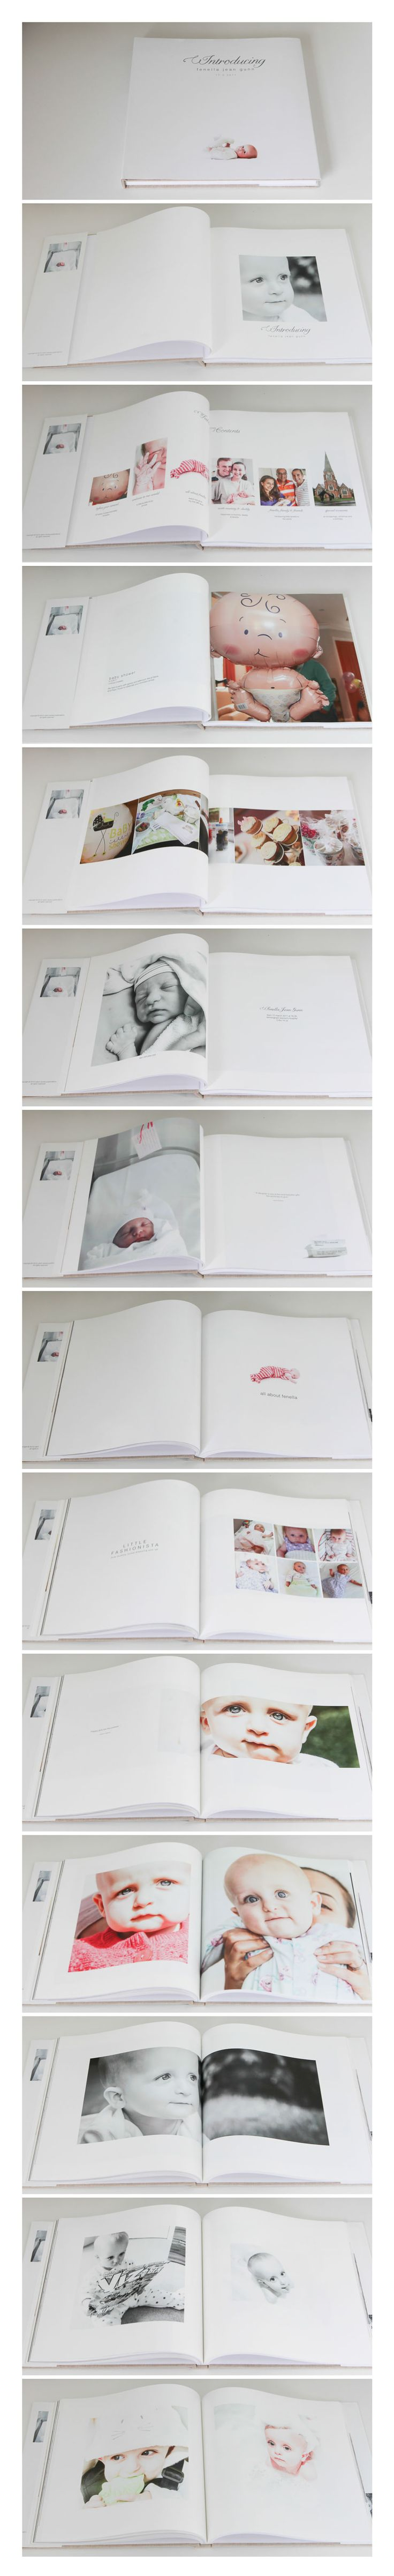 A minimalist photobook we created this summer. We just love the elegance and timelessness of simplicity.